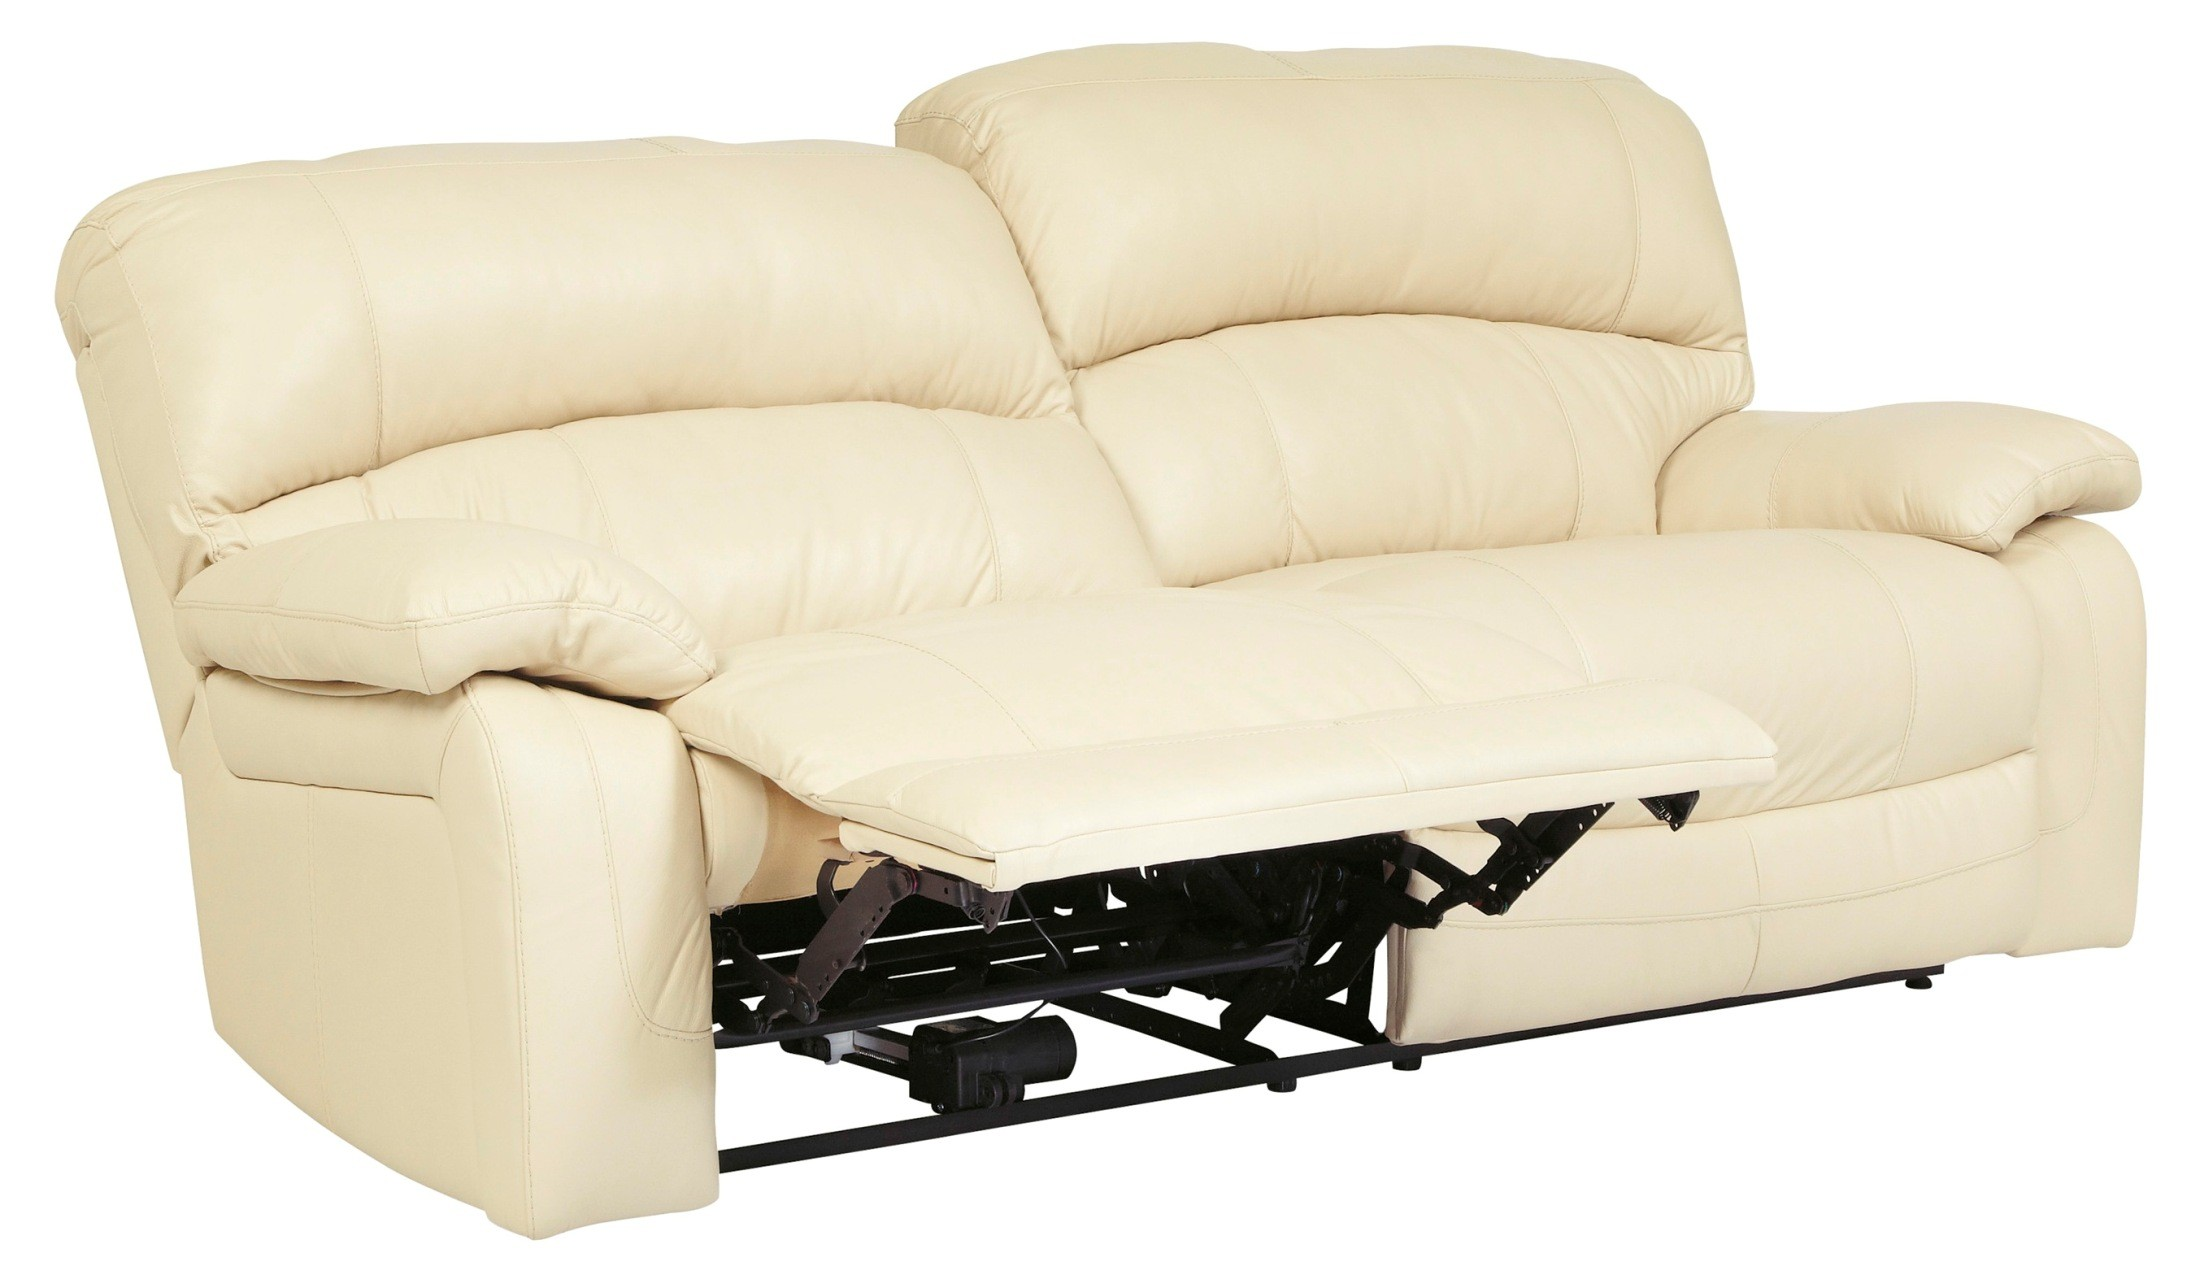 Damacio cream 2 seat power reclining sofa from ashley u9820147 coleman furniture Power loveseat recliner